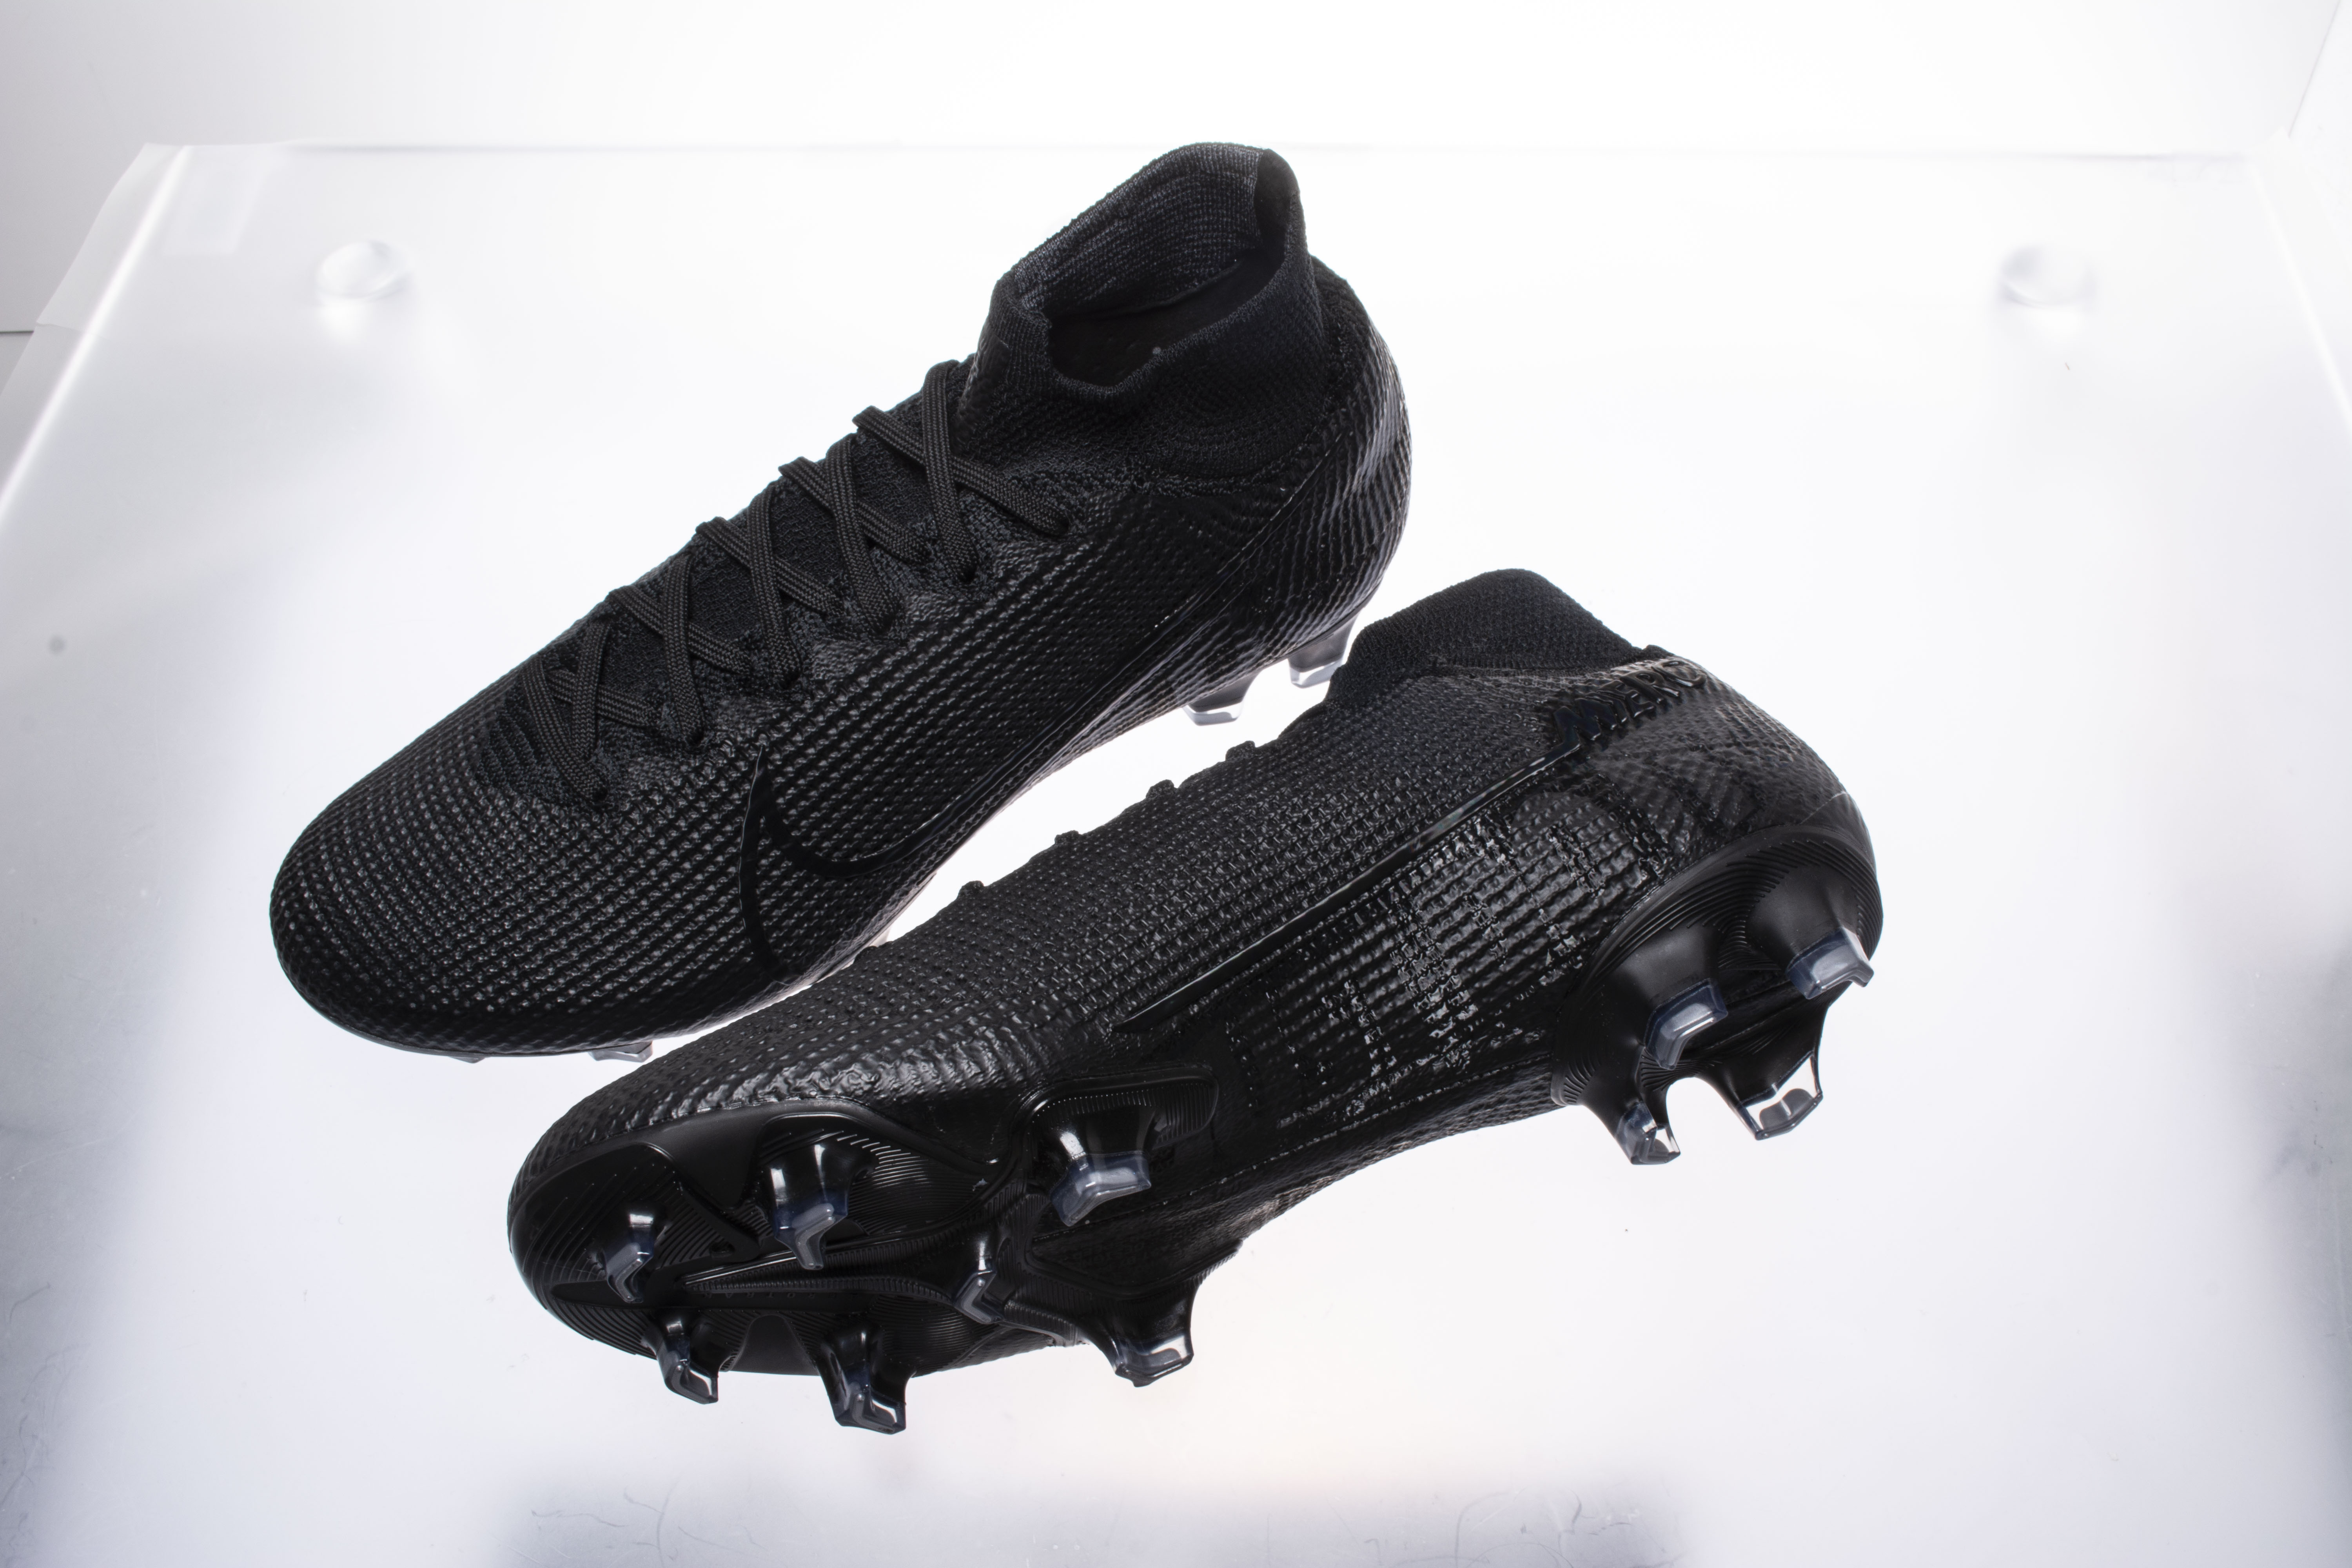 online store 09bc9 8126f Deep Dive Instep Review: Nike Mercurial SuperFly VII - The ...